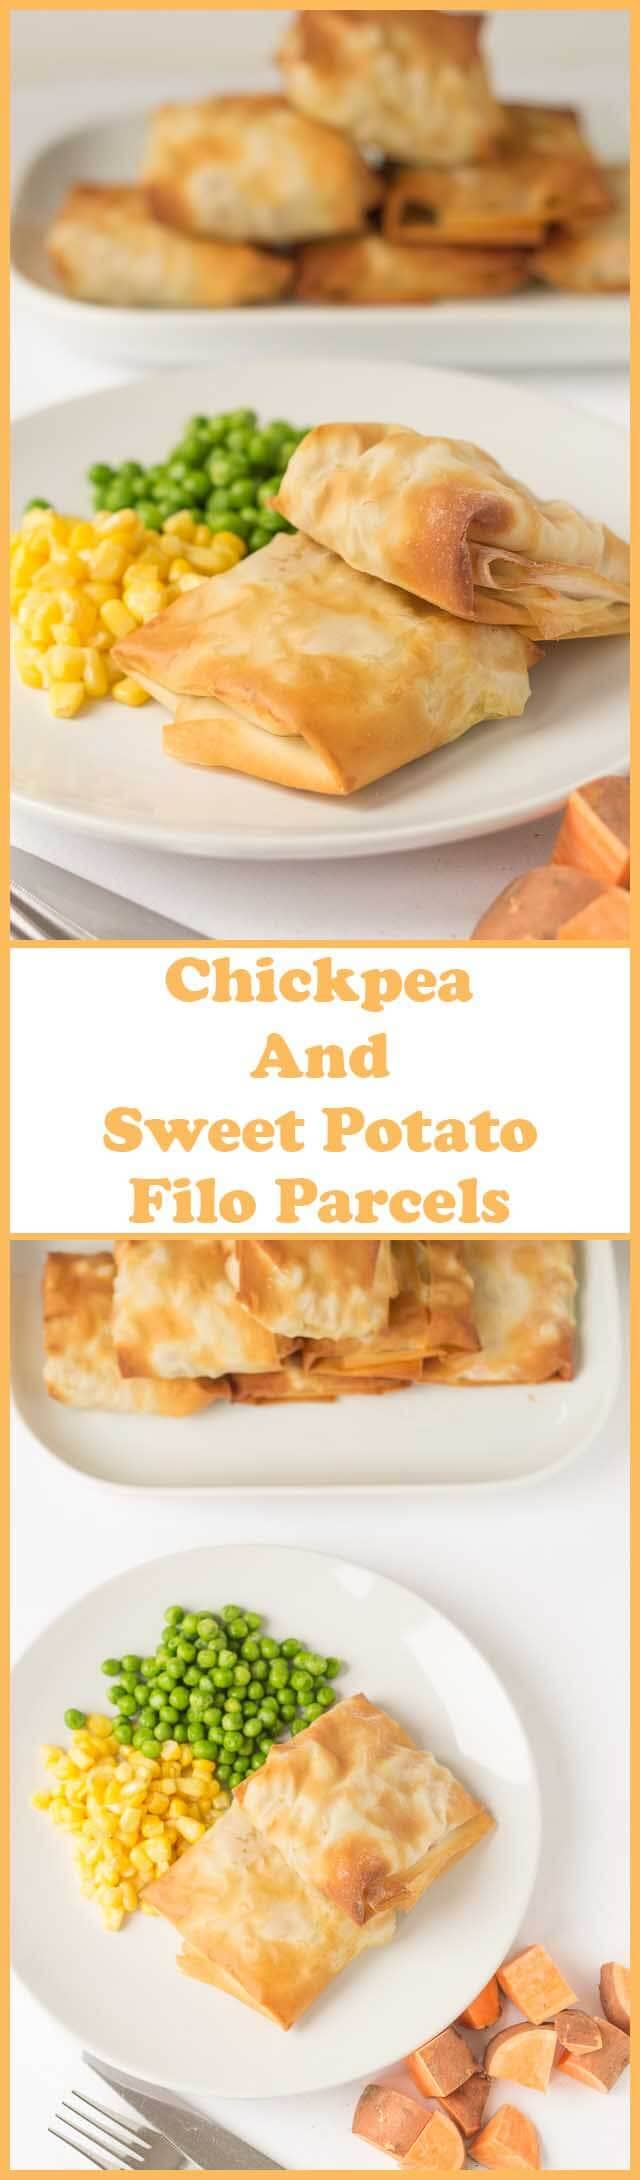 Chickpea and sweet potato filo parcels are the ultimate quick healthy meal! With a delicious budget filling and a satisfying crunch this easy to make filo pastry recipe is just what you need as a lower fat healthier alternative to traditional pastry.